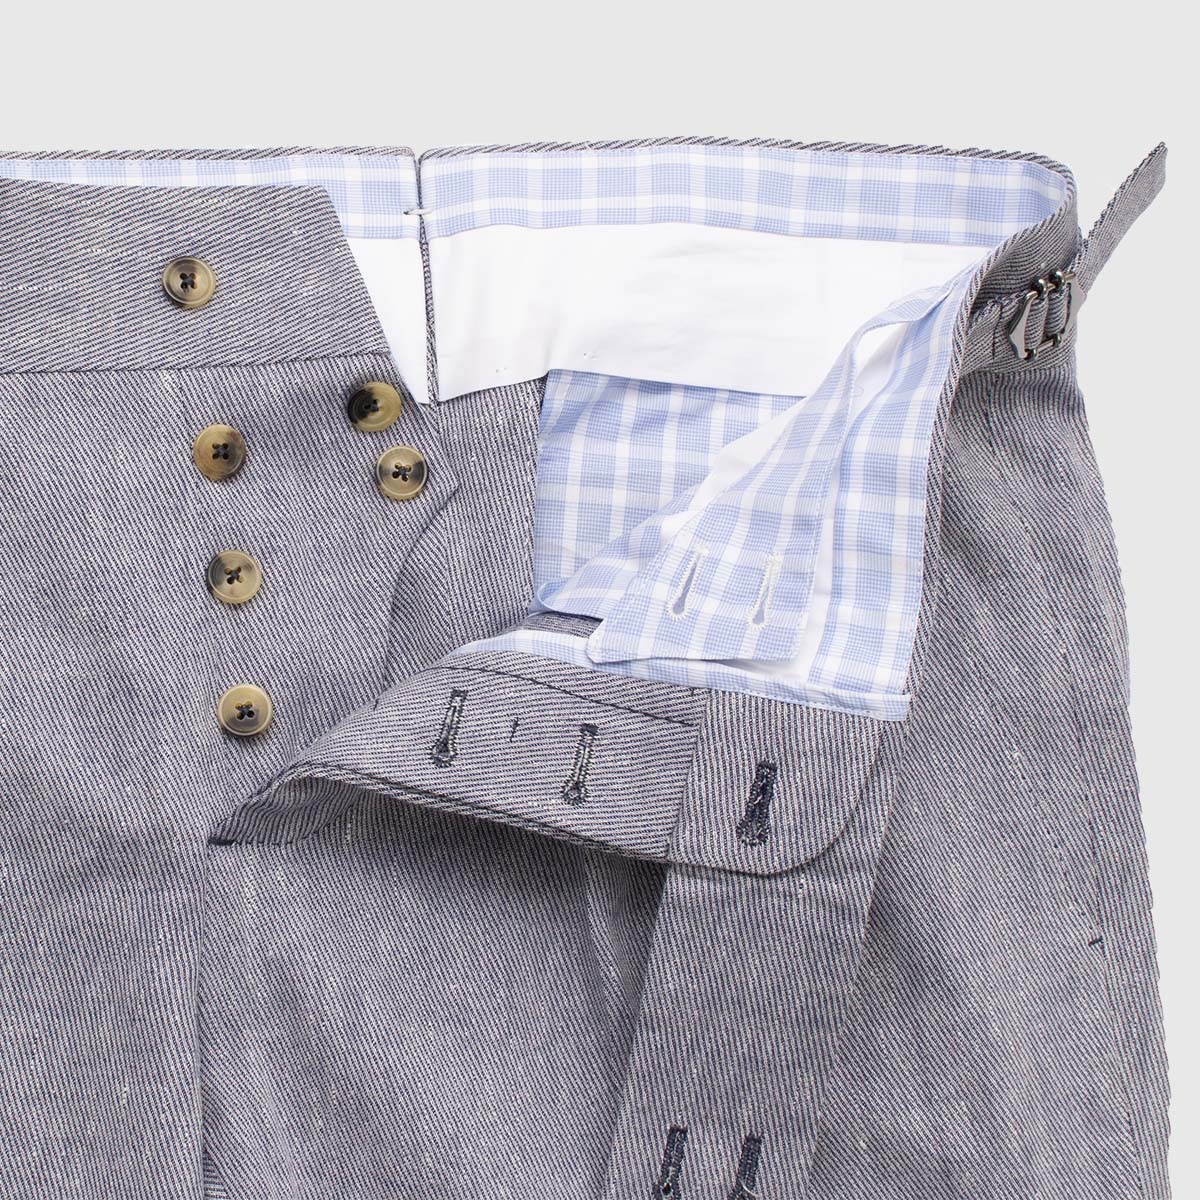 Double piences trousers in Wool Cotton and Linen